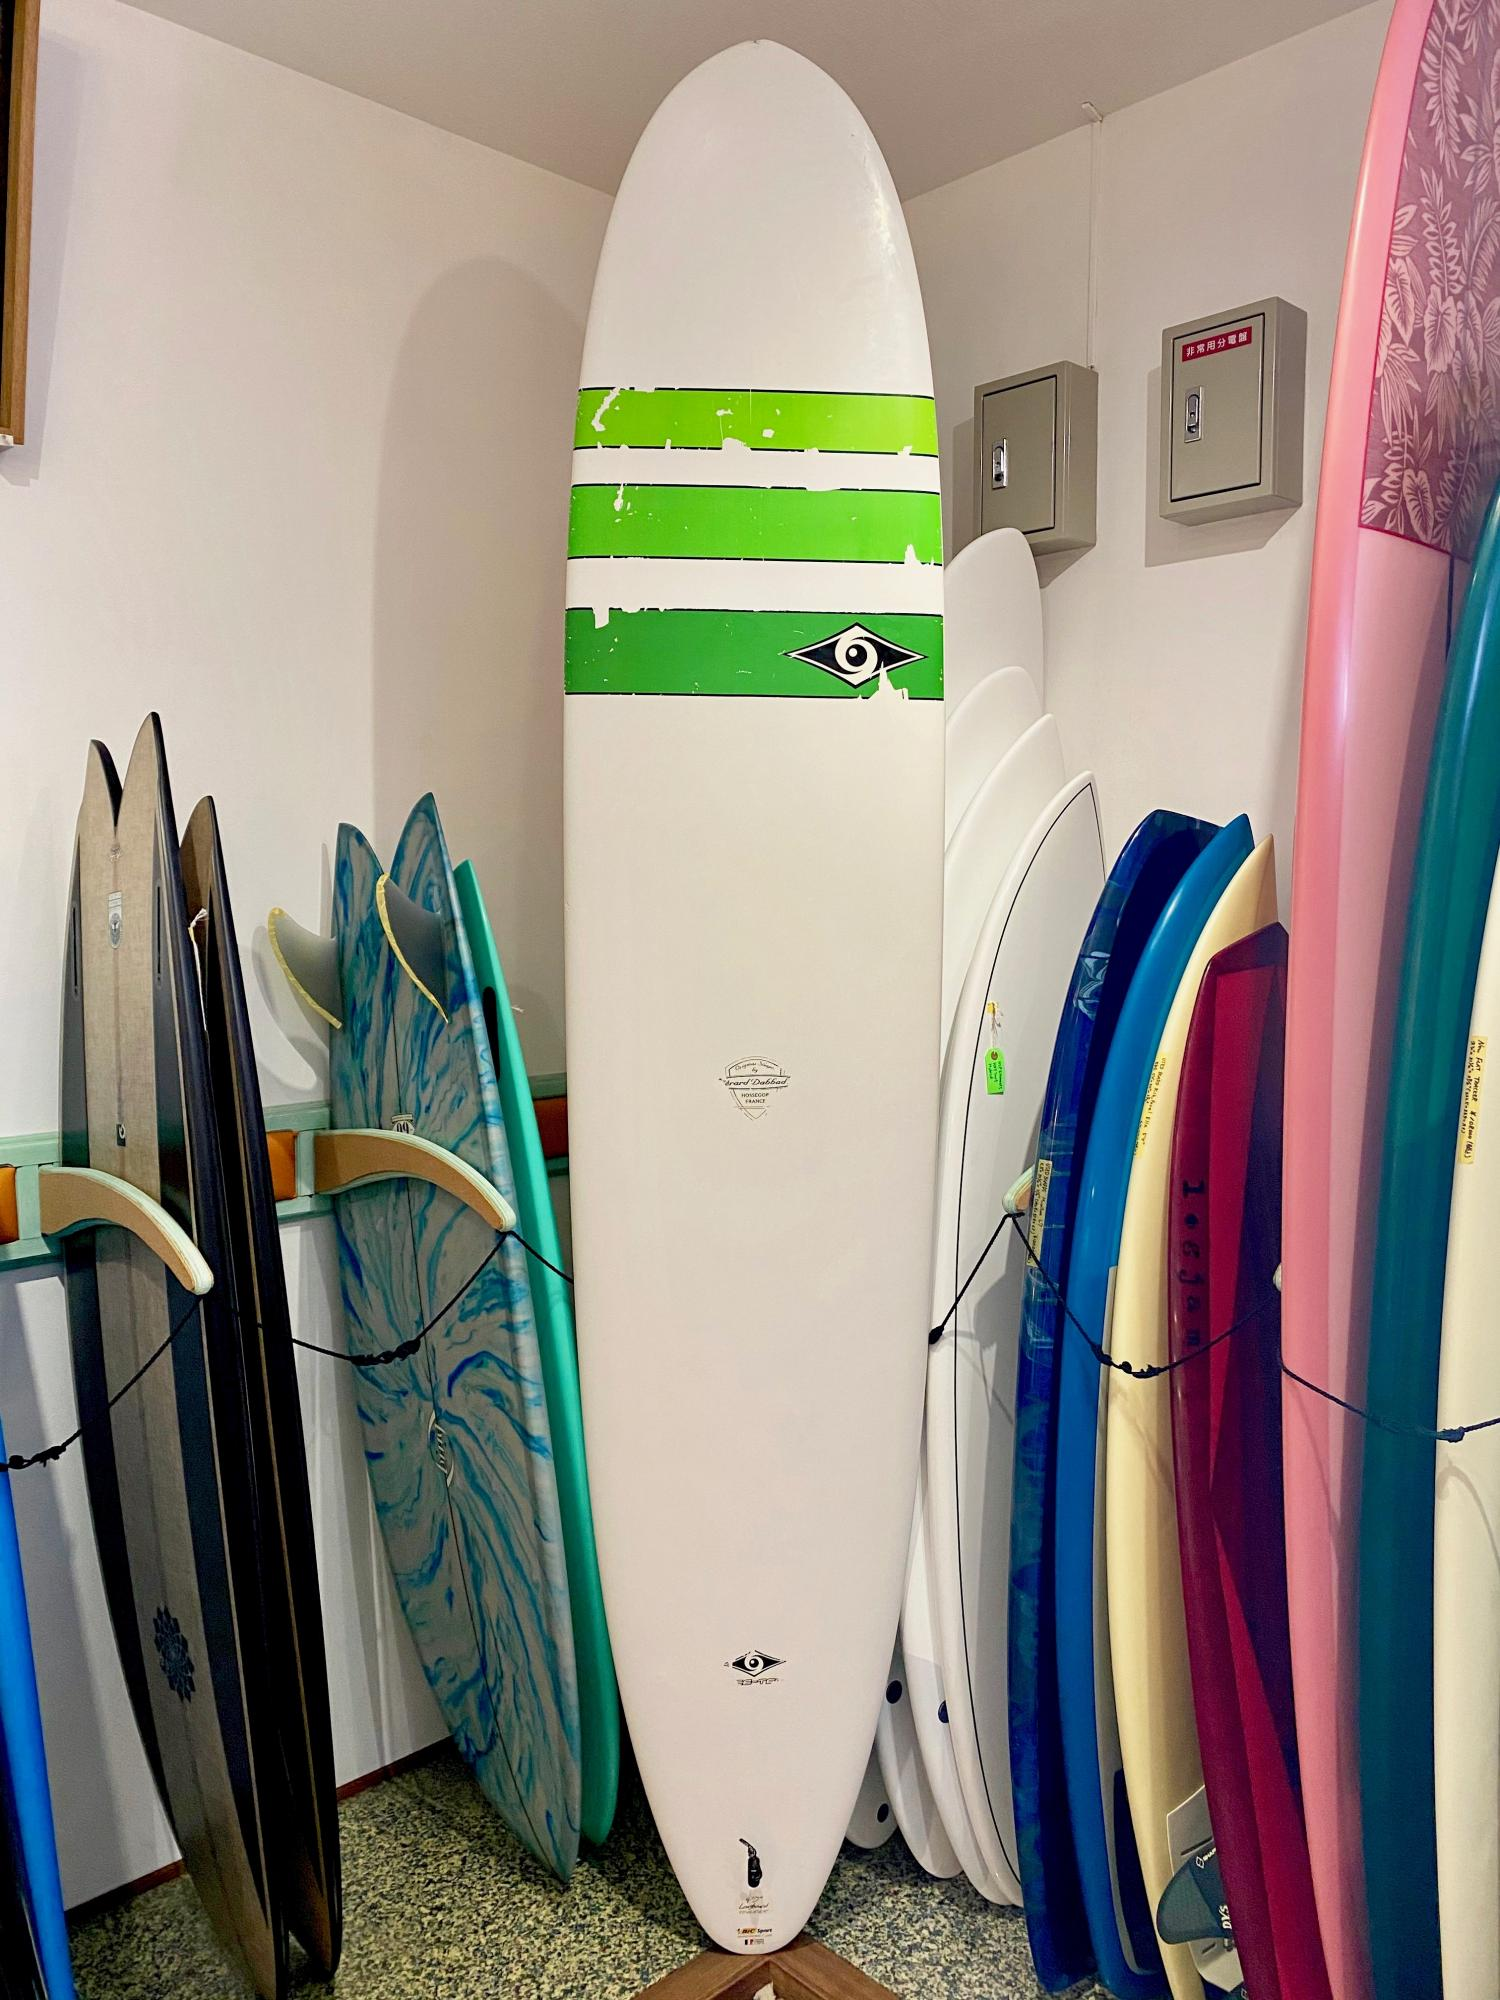 USED BOARDS (BIC SURF BOARDS 9.0 Longboard )